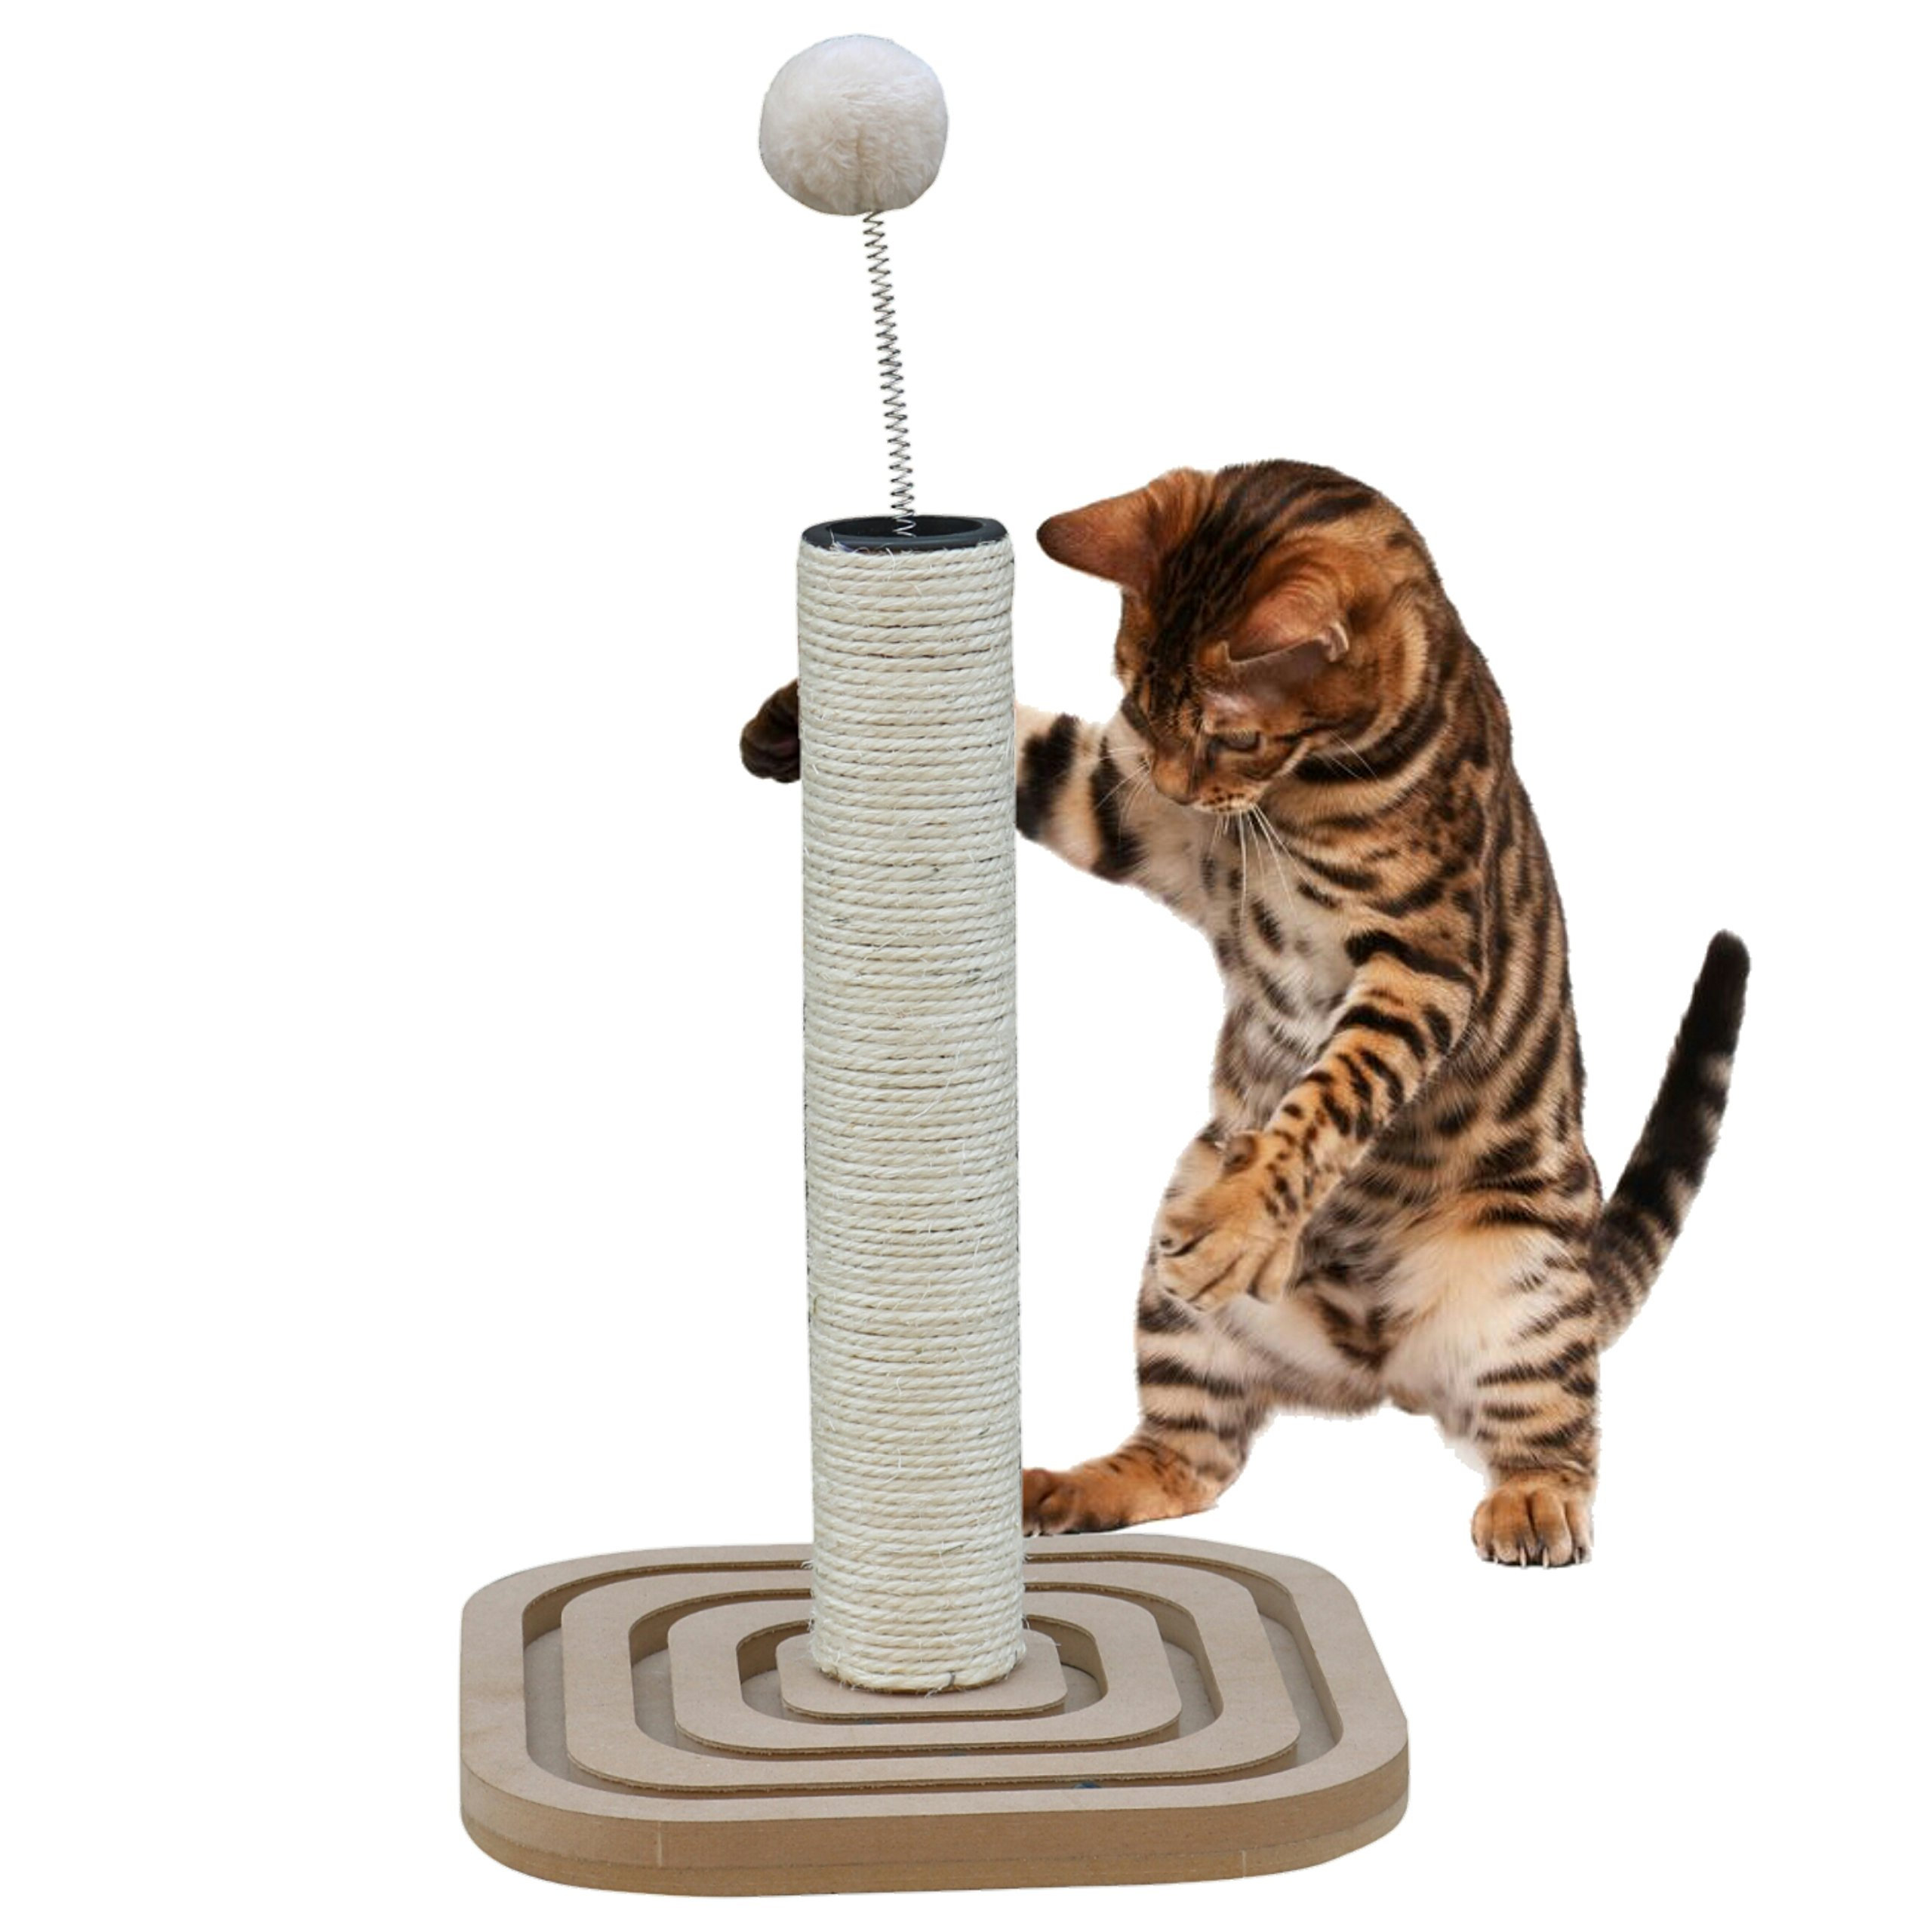 Mr. Peanut's Couch Saver Premium Cat Scratching Post with Built In Interactive Marbles - Durable Sisal Material Keeps Kitten Claws Active & Protects Your Furniture - Includes Interactive Marbles by Mr. Peanut's